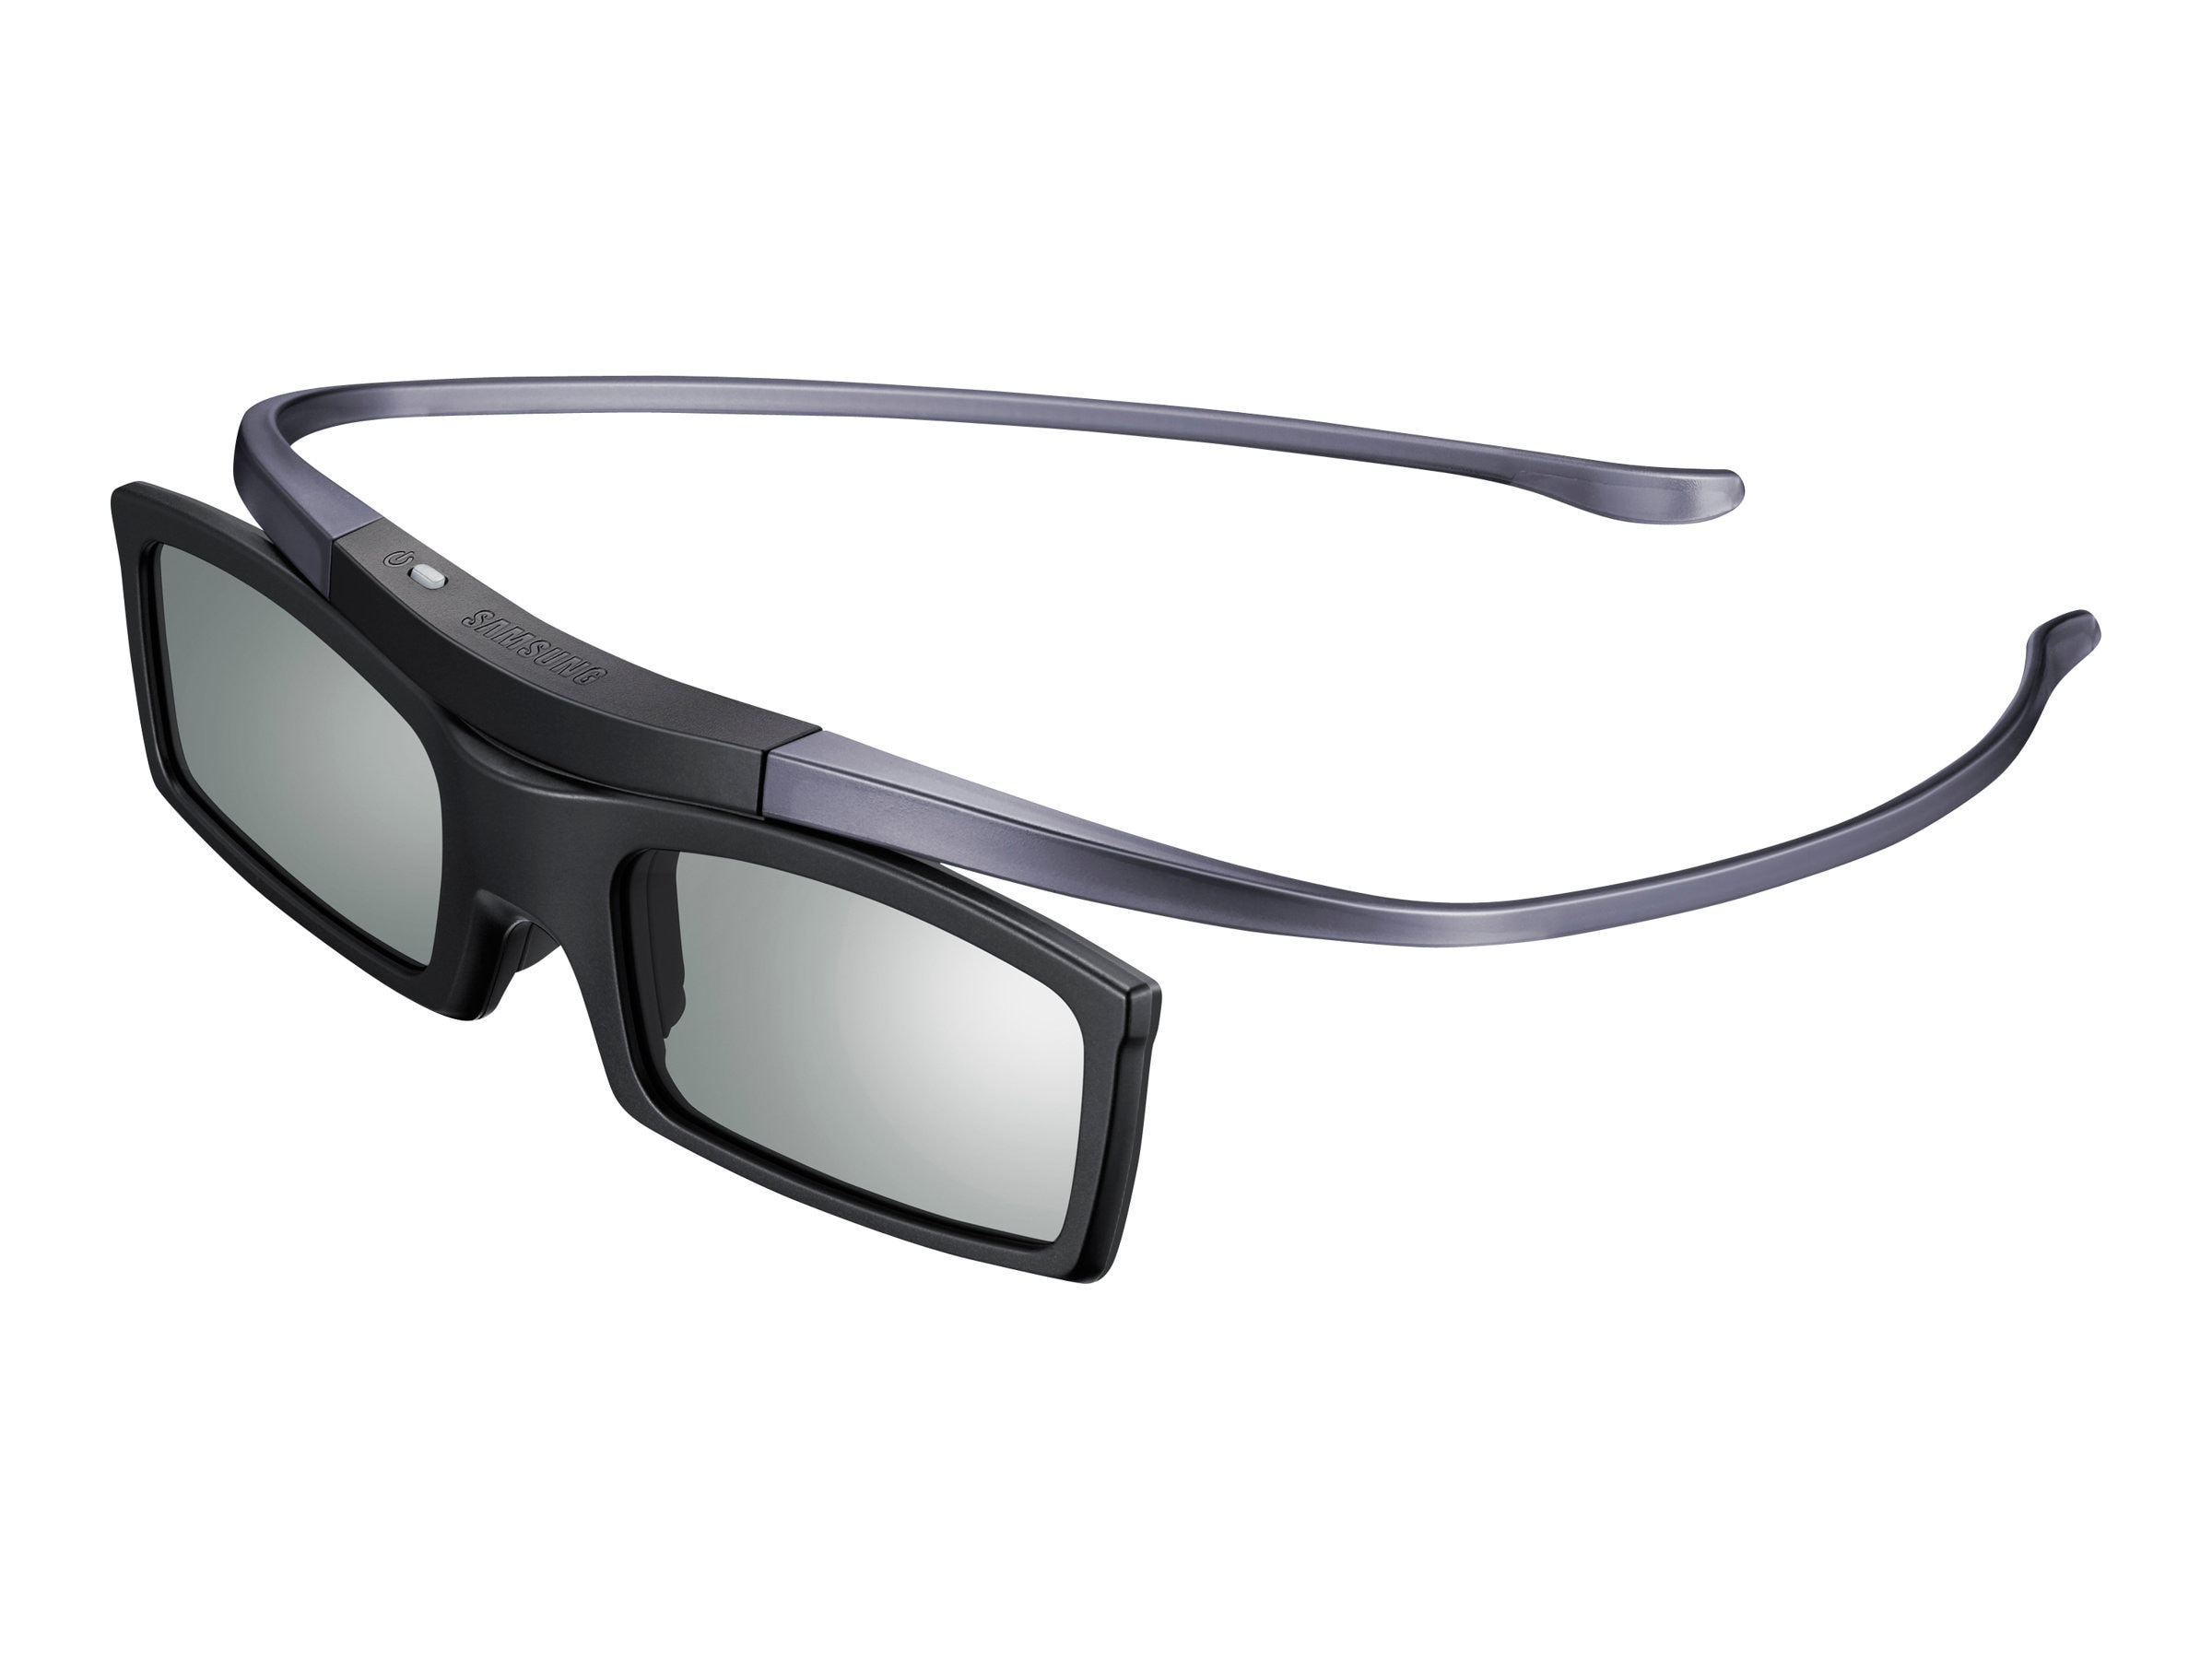 Samsung 3D Active Glasses, SSG-5150GB/ZA, 16852152, Monitor & Display Accessories